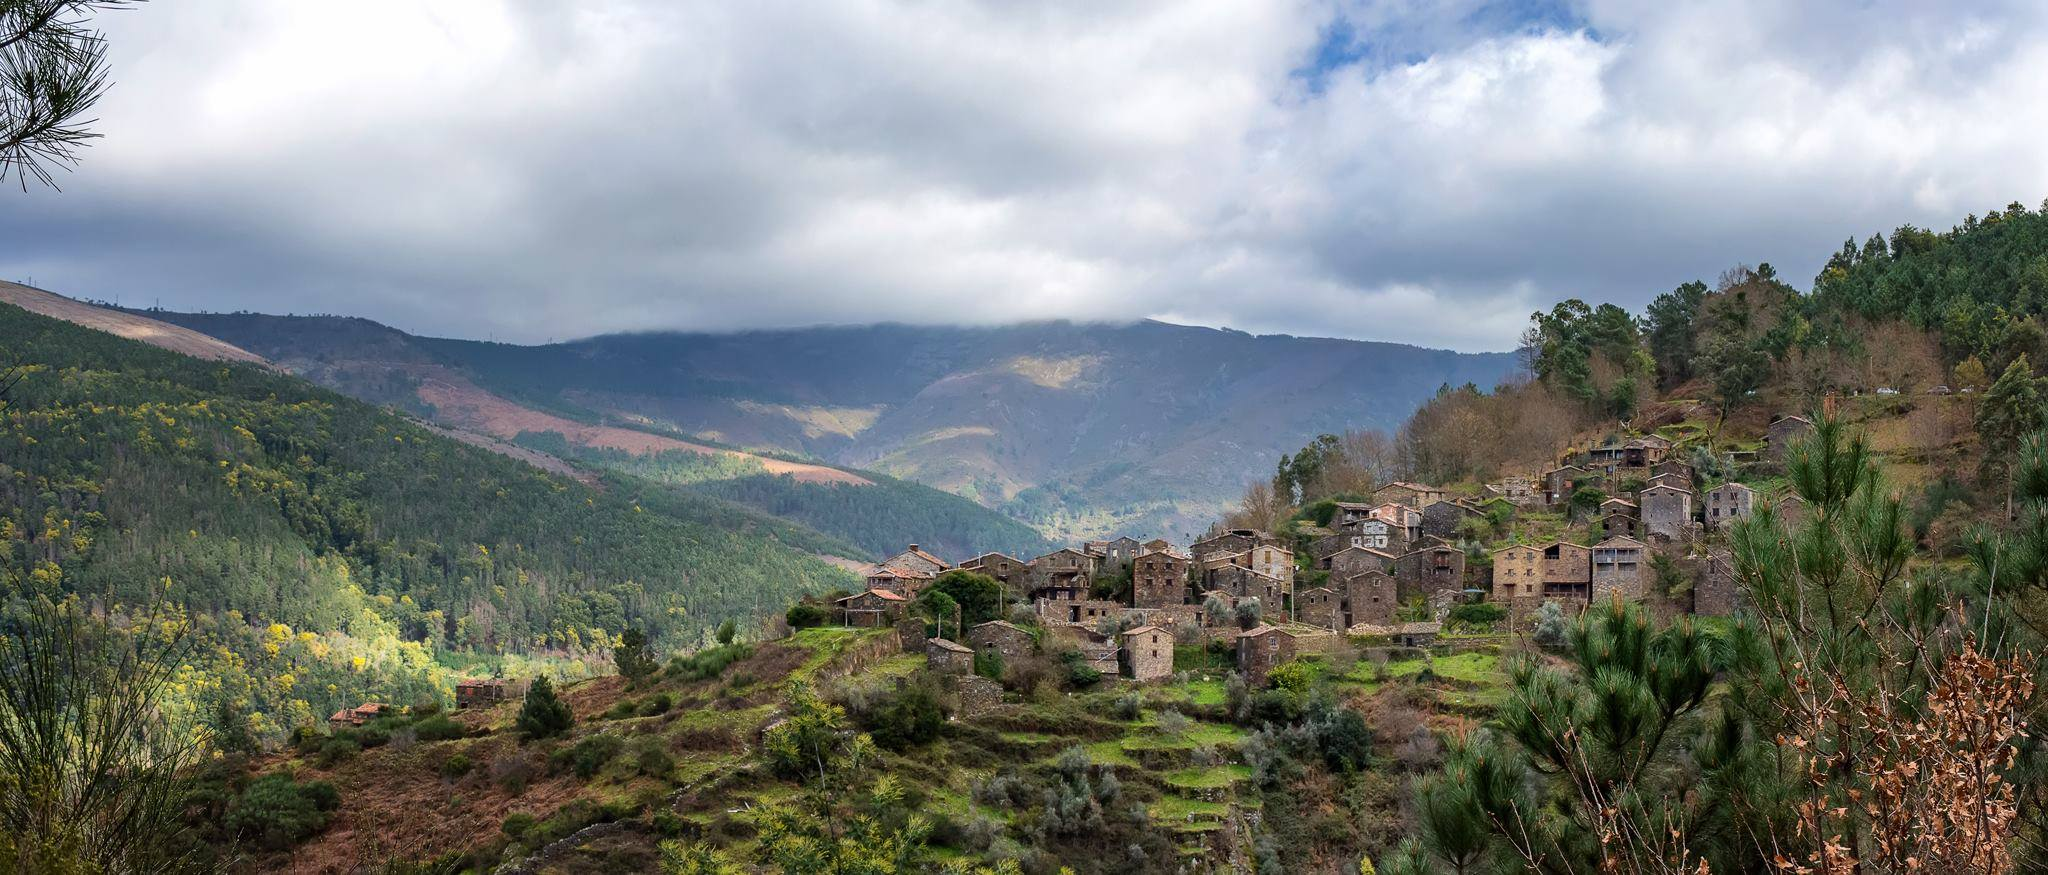 27 Stone villages in the mountains